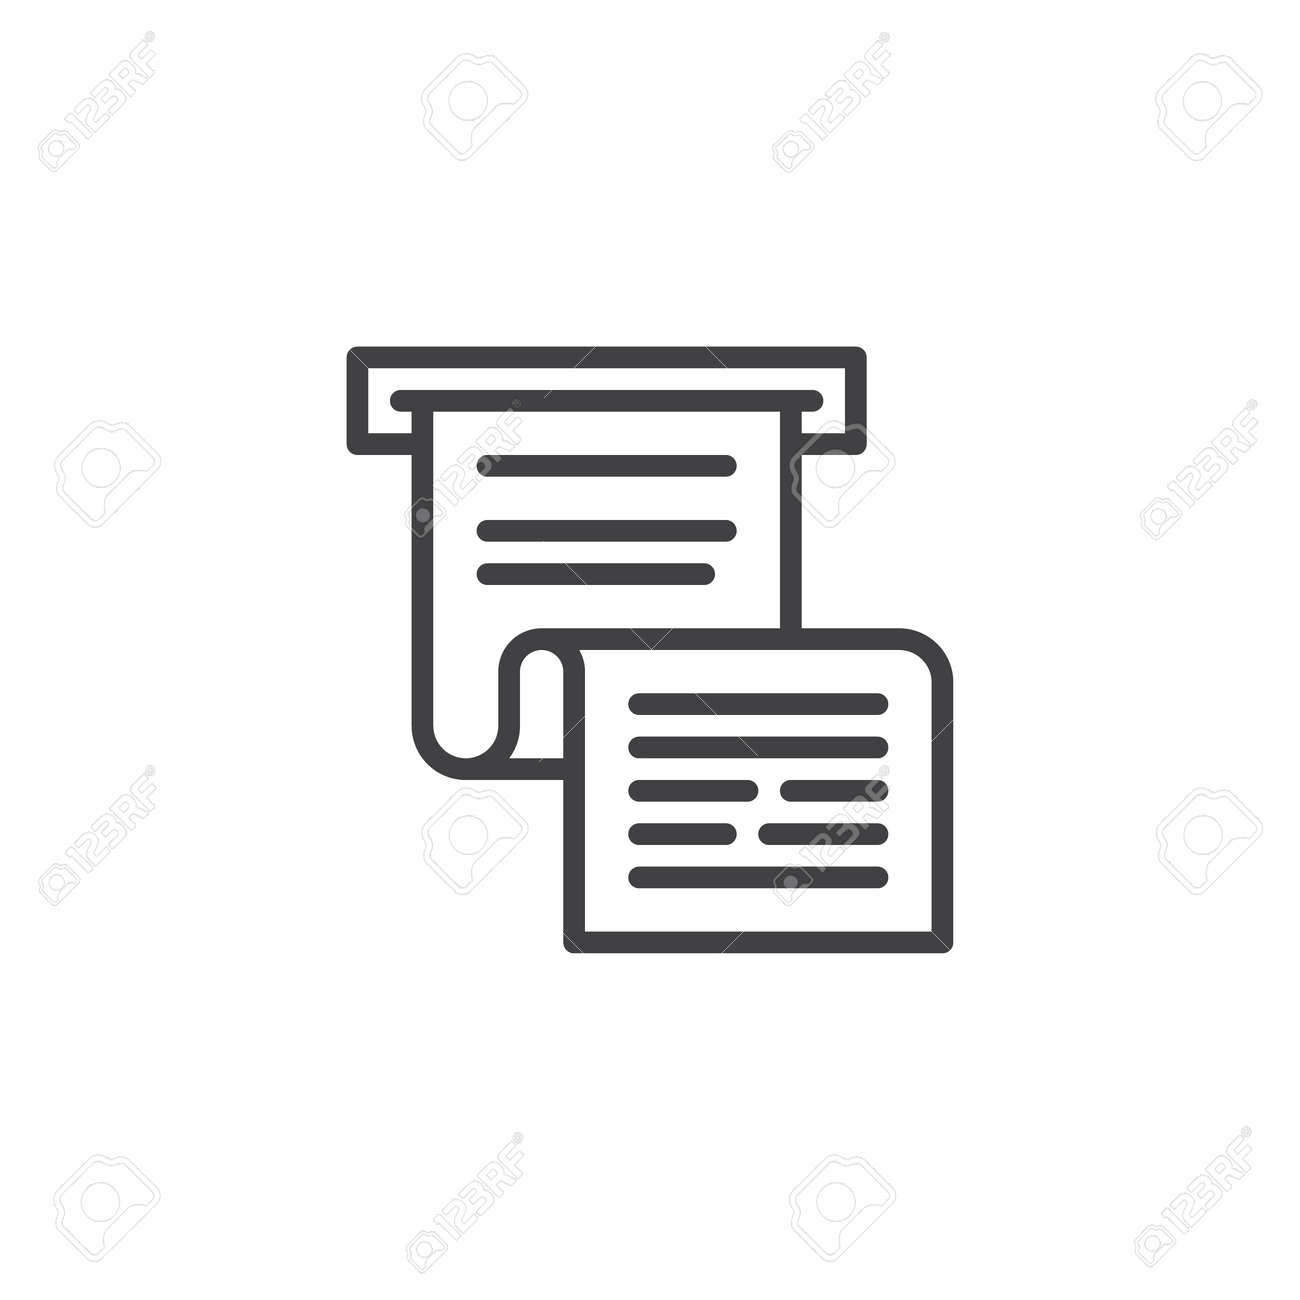 invoice or paycheck outline icon linear style sign for mobile